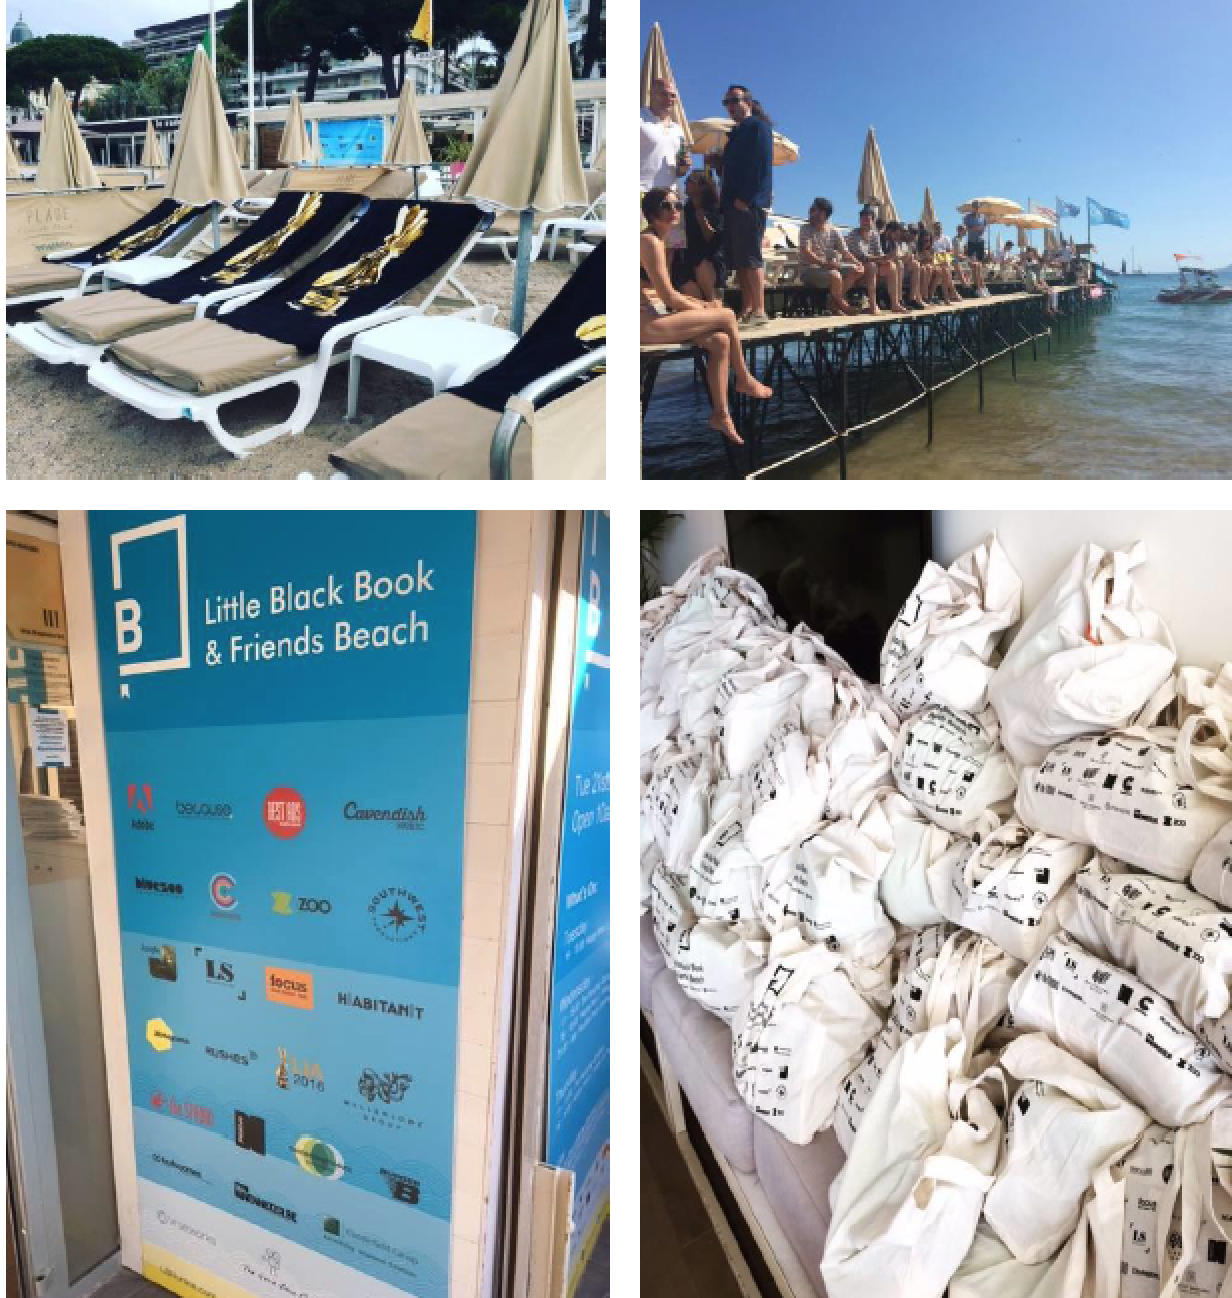 LBB & Friends are back on the beach for Cannes 2020 – and LBB members from OZ/NZ are invited